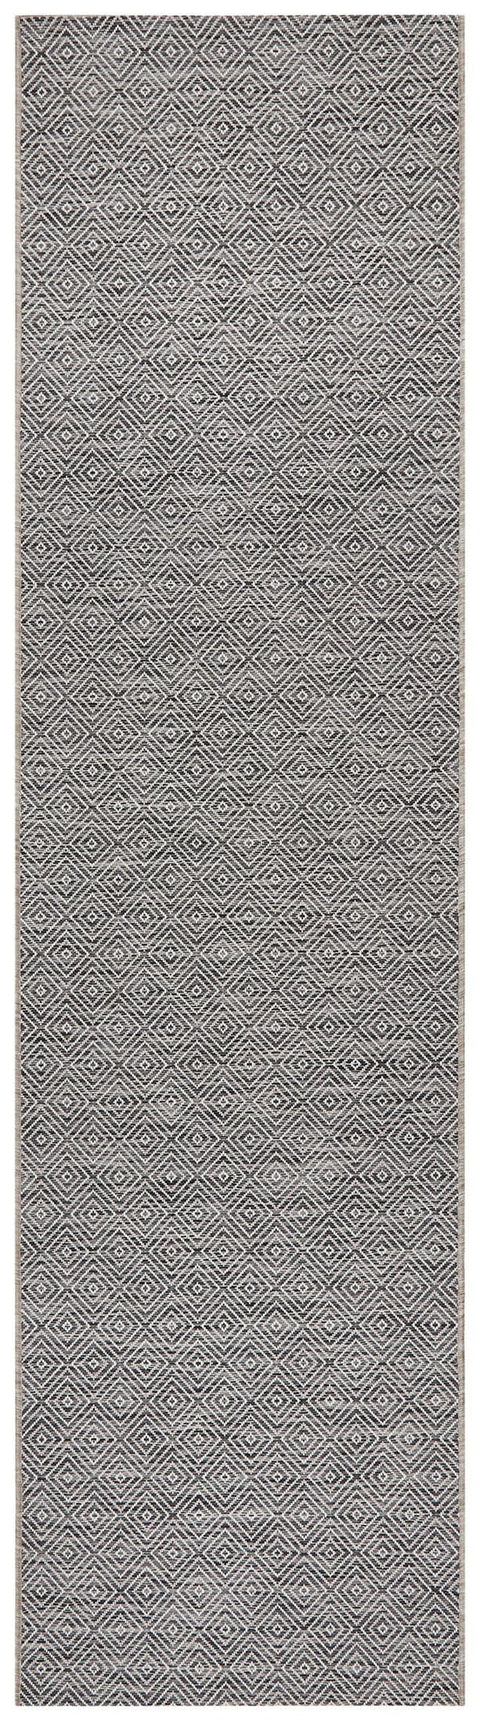 Corozal Charcoal Diamond Runner Rug